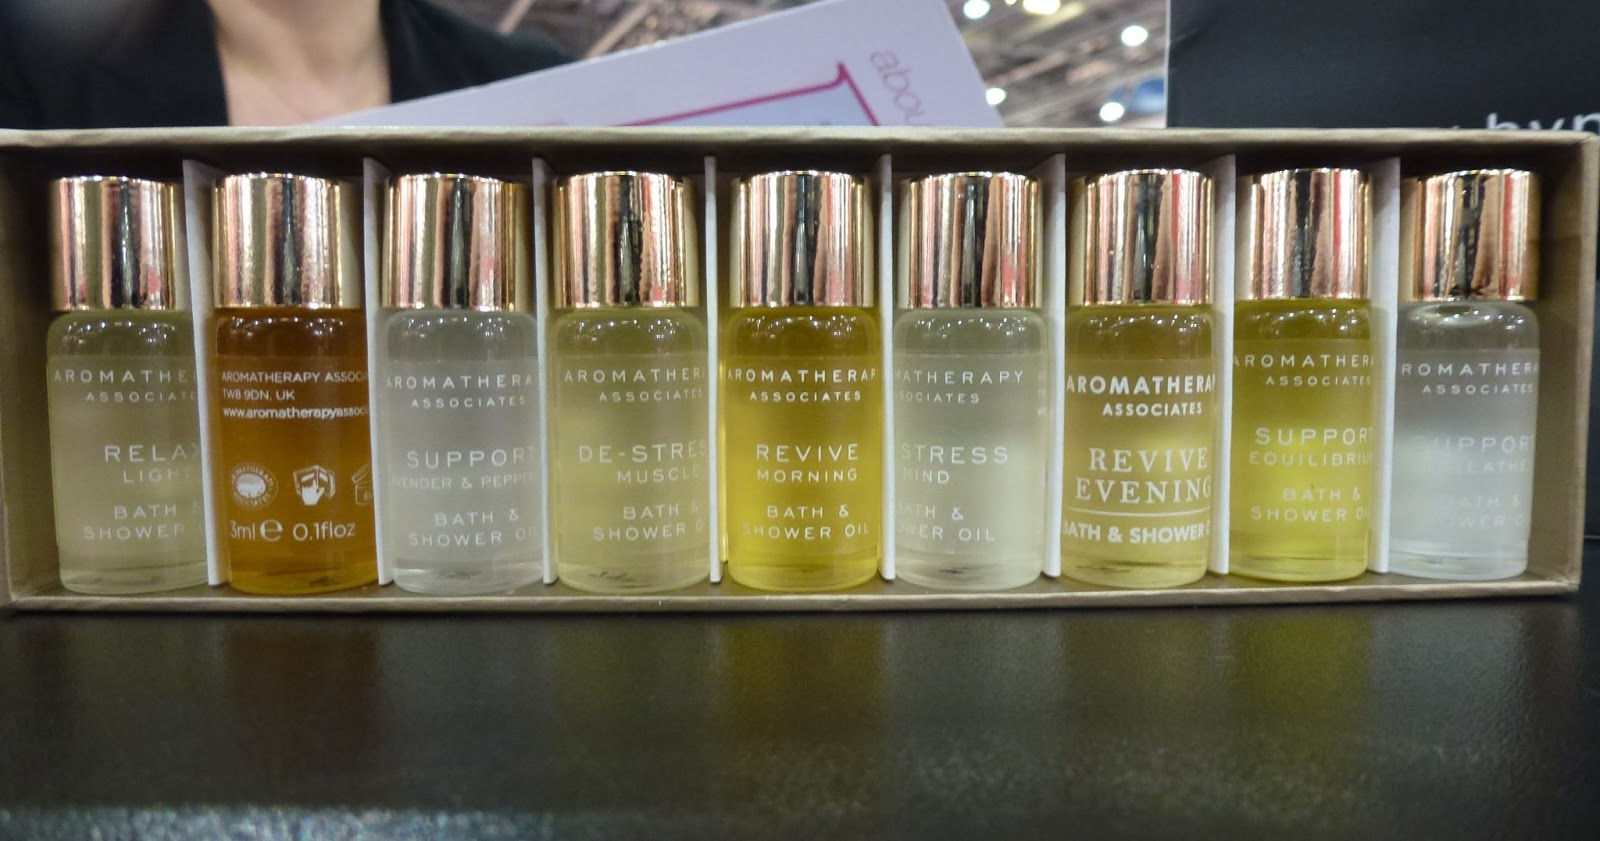 aromatherapy-associates-bath-and-shower-oils